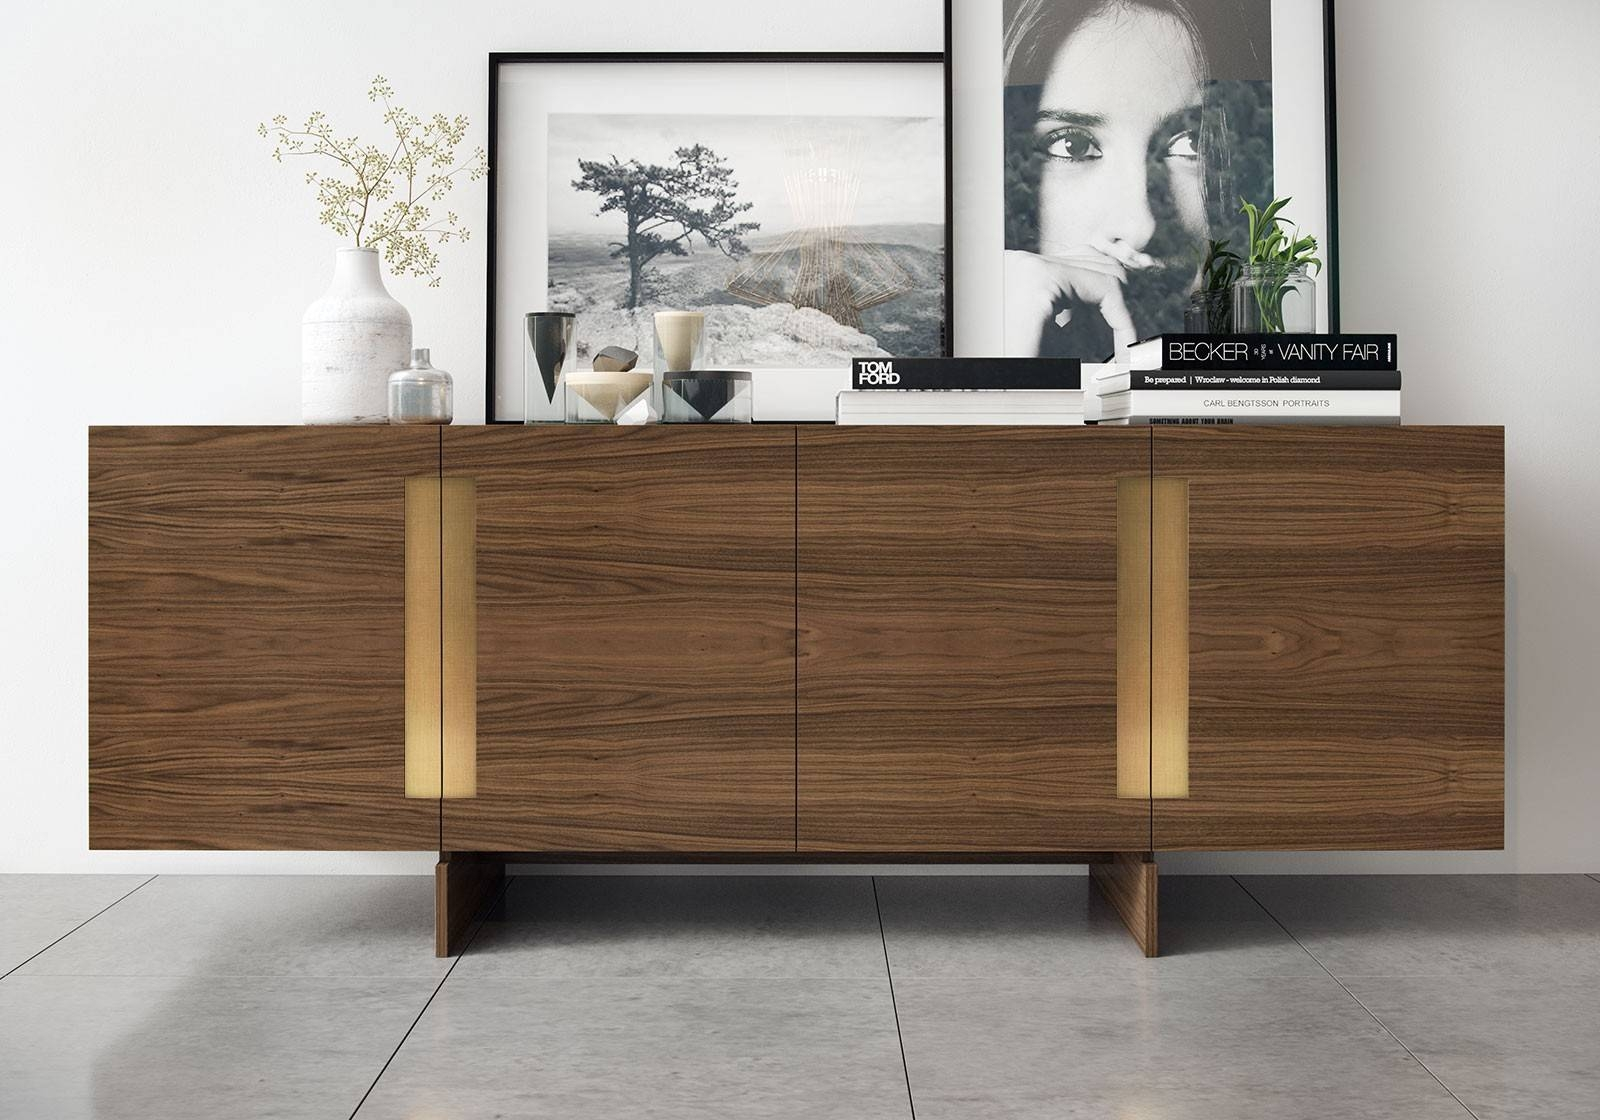 Furniture: 12 Inch Deep Sideboard With Modern Sideboard Also With Regard To 12 Inch Deep Sideboards (#9 of 15)